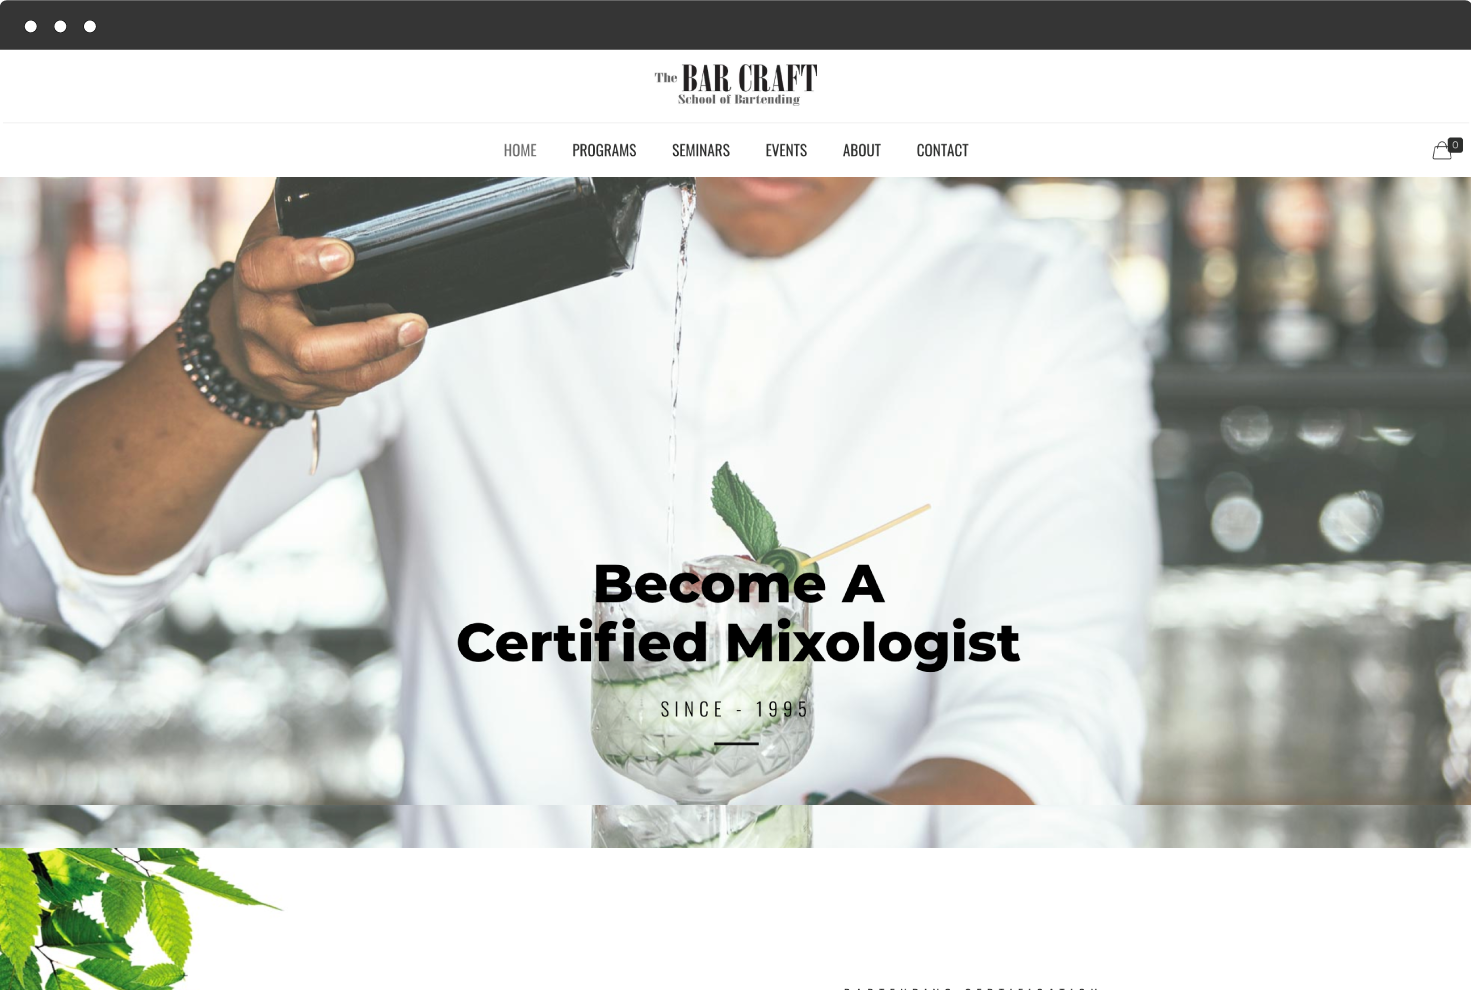 Image of The Bar Craft's Website